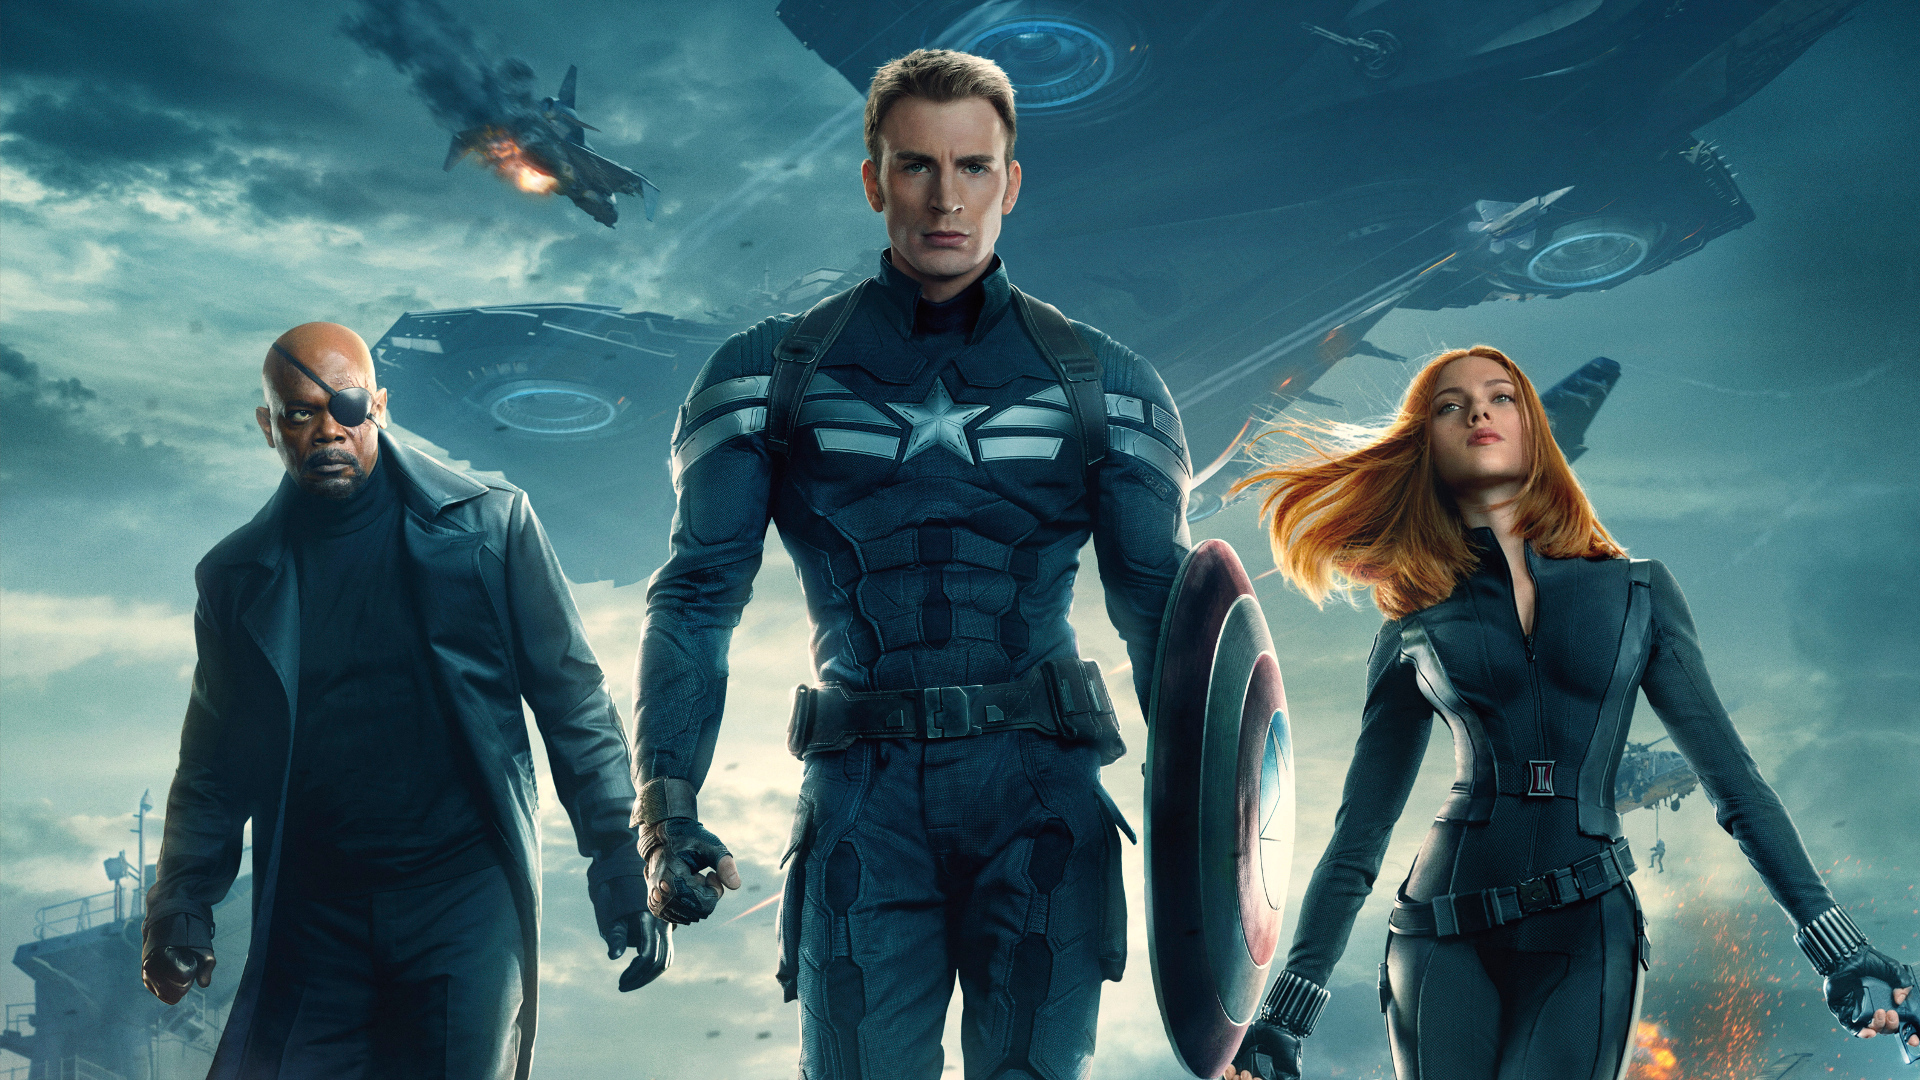 As-Steve-Rogers-struggles-to-embrace-his-role-in-the-modern-world-he-teams-up-with-another-super-so-wallpaper-wpc9002378